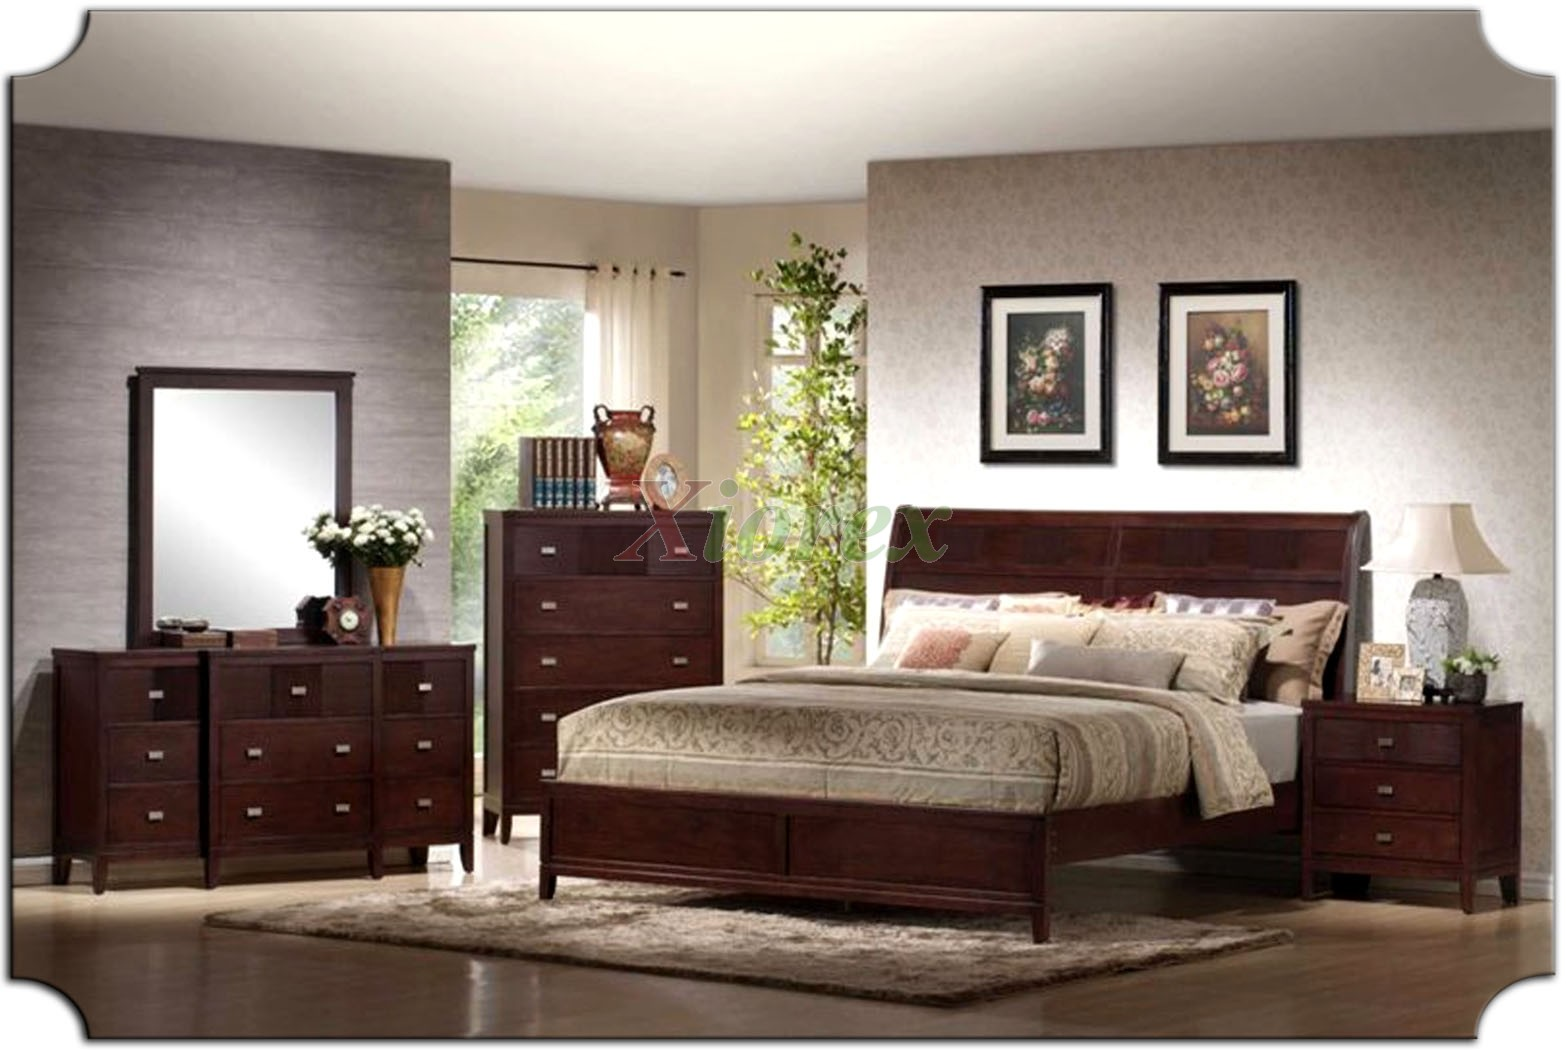 Platform bedroom furniture set with curved headboard beds for Where to get bedroom furniture